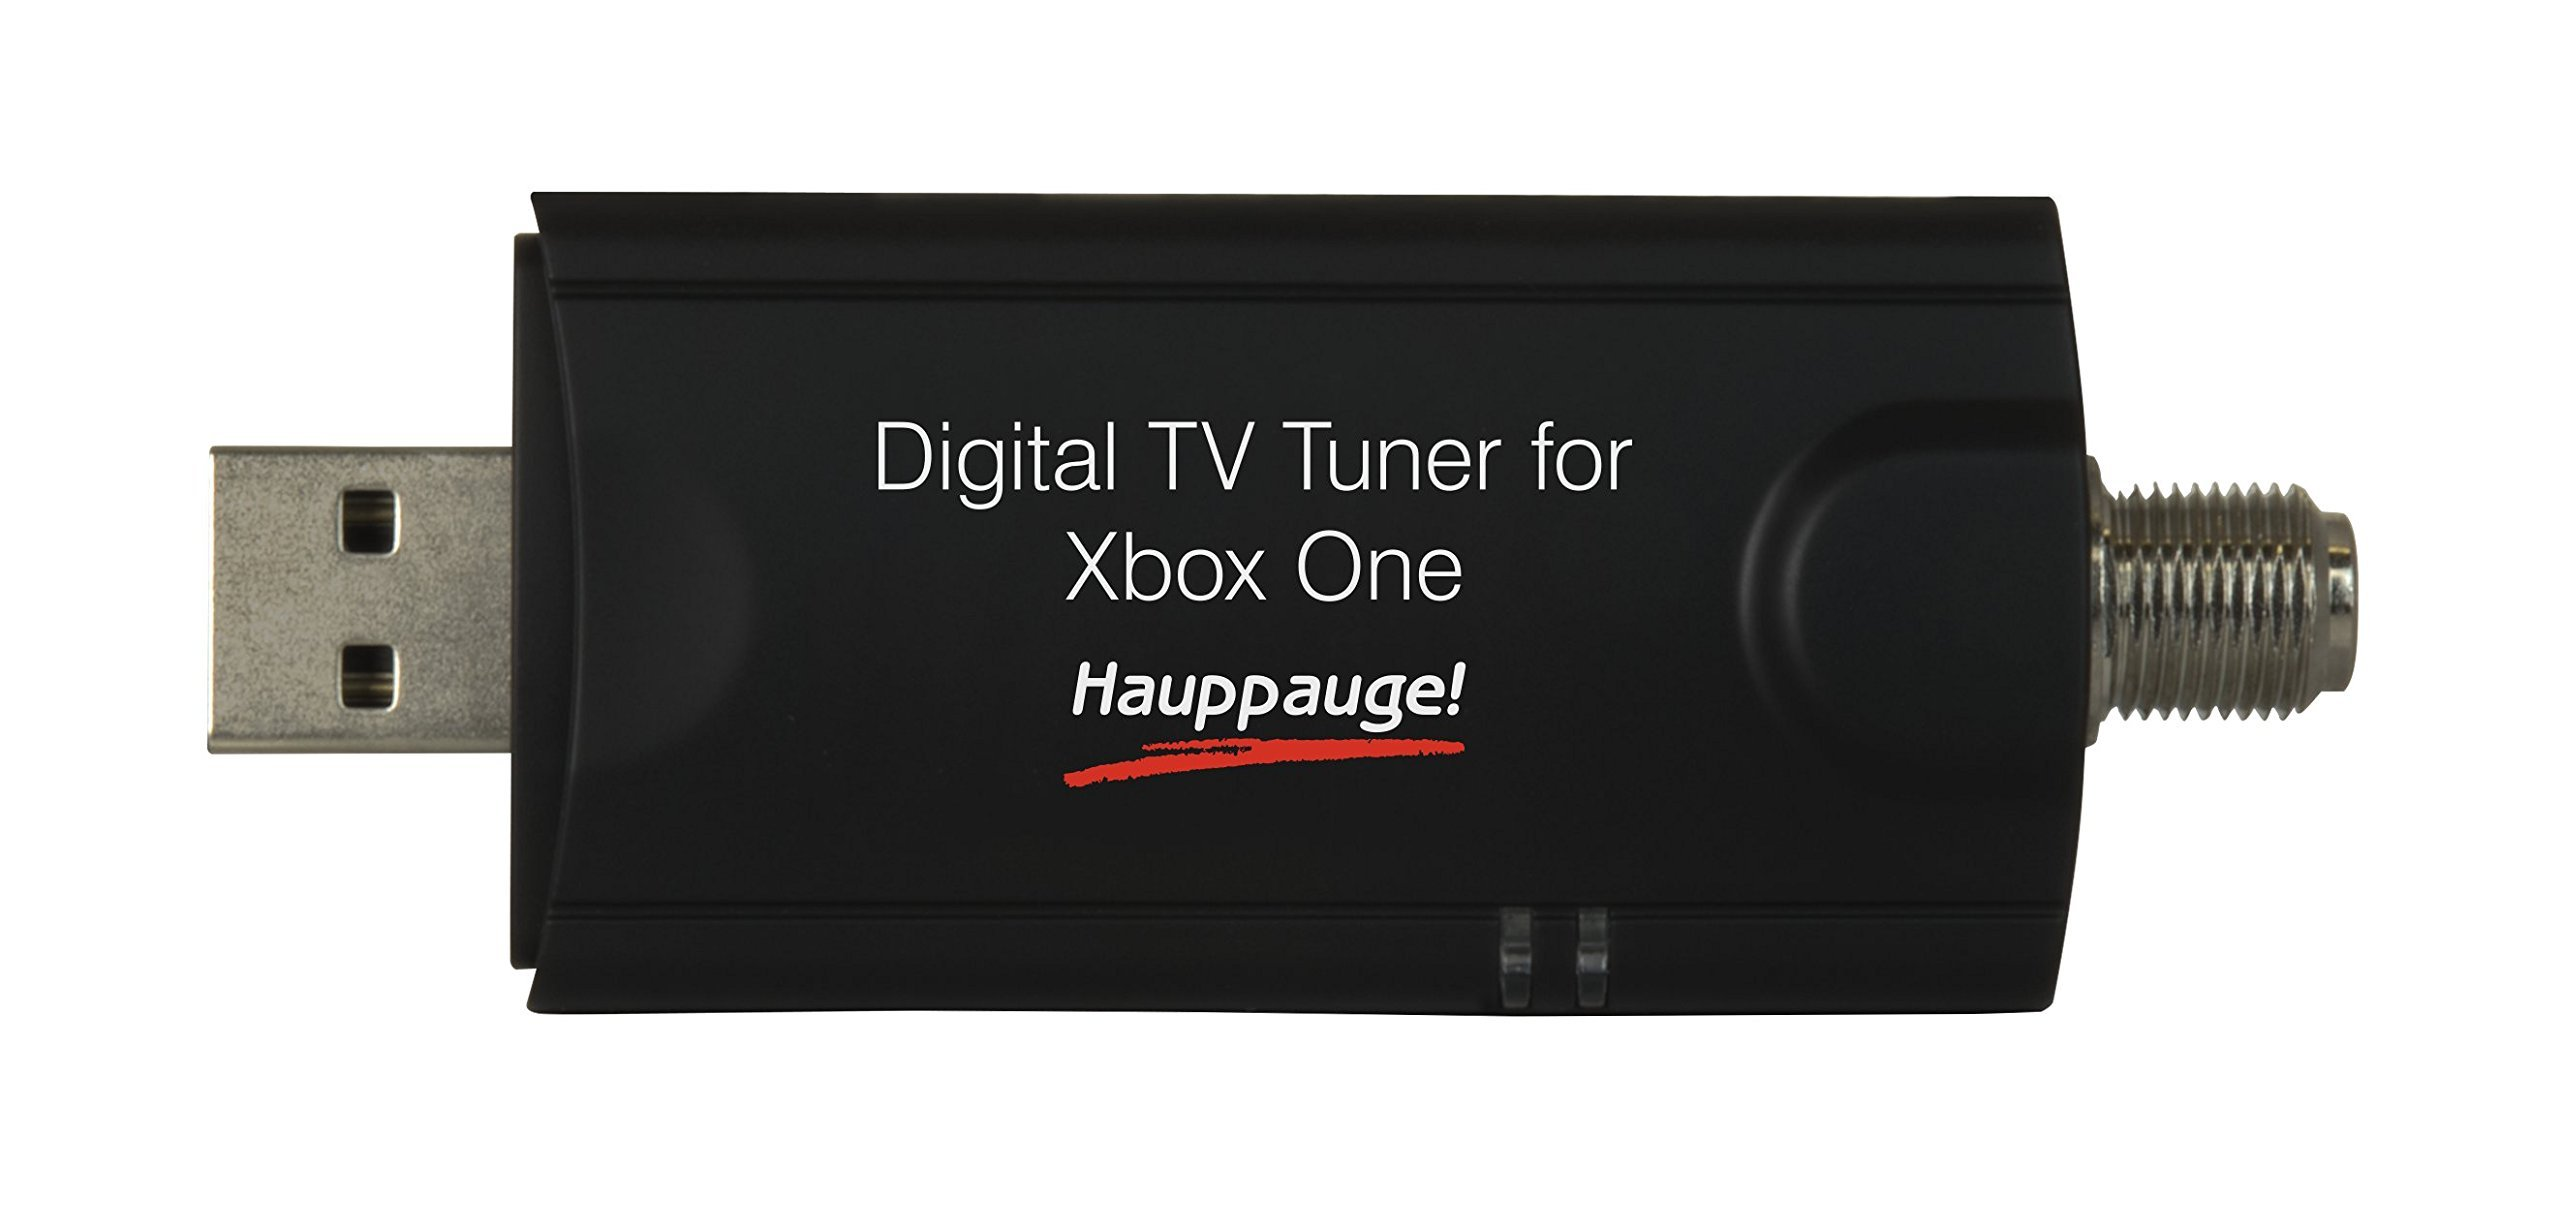 Hauppauge Digital TV Tuner for Xbox One TV Tuners and Video Capture 1578 (Certified Refurbished) by Hauppauge